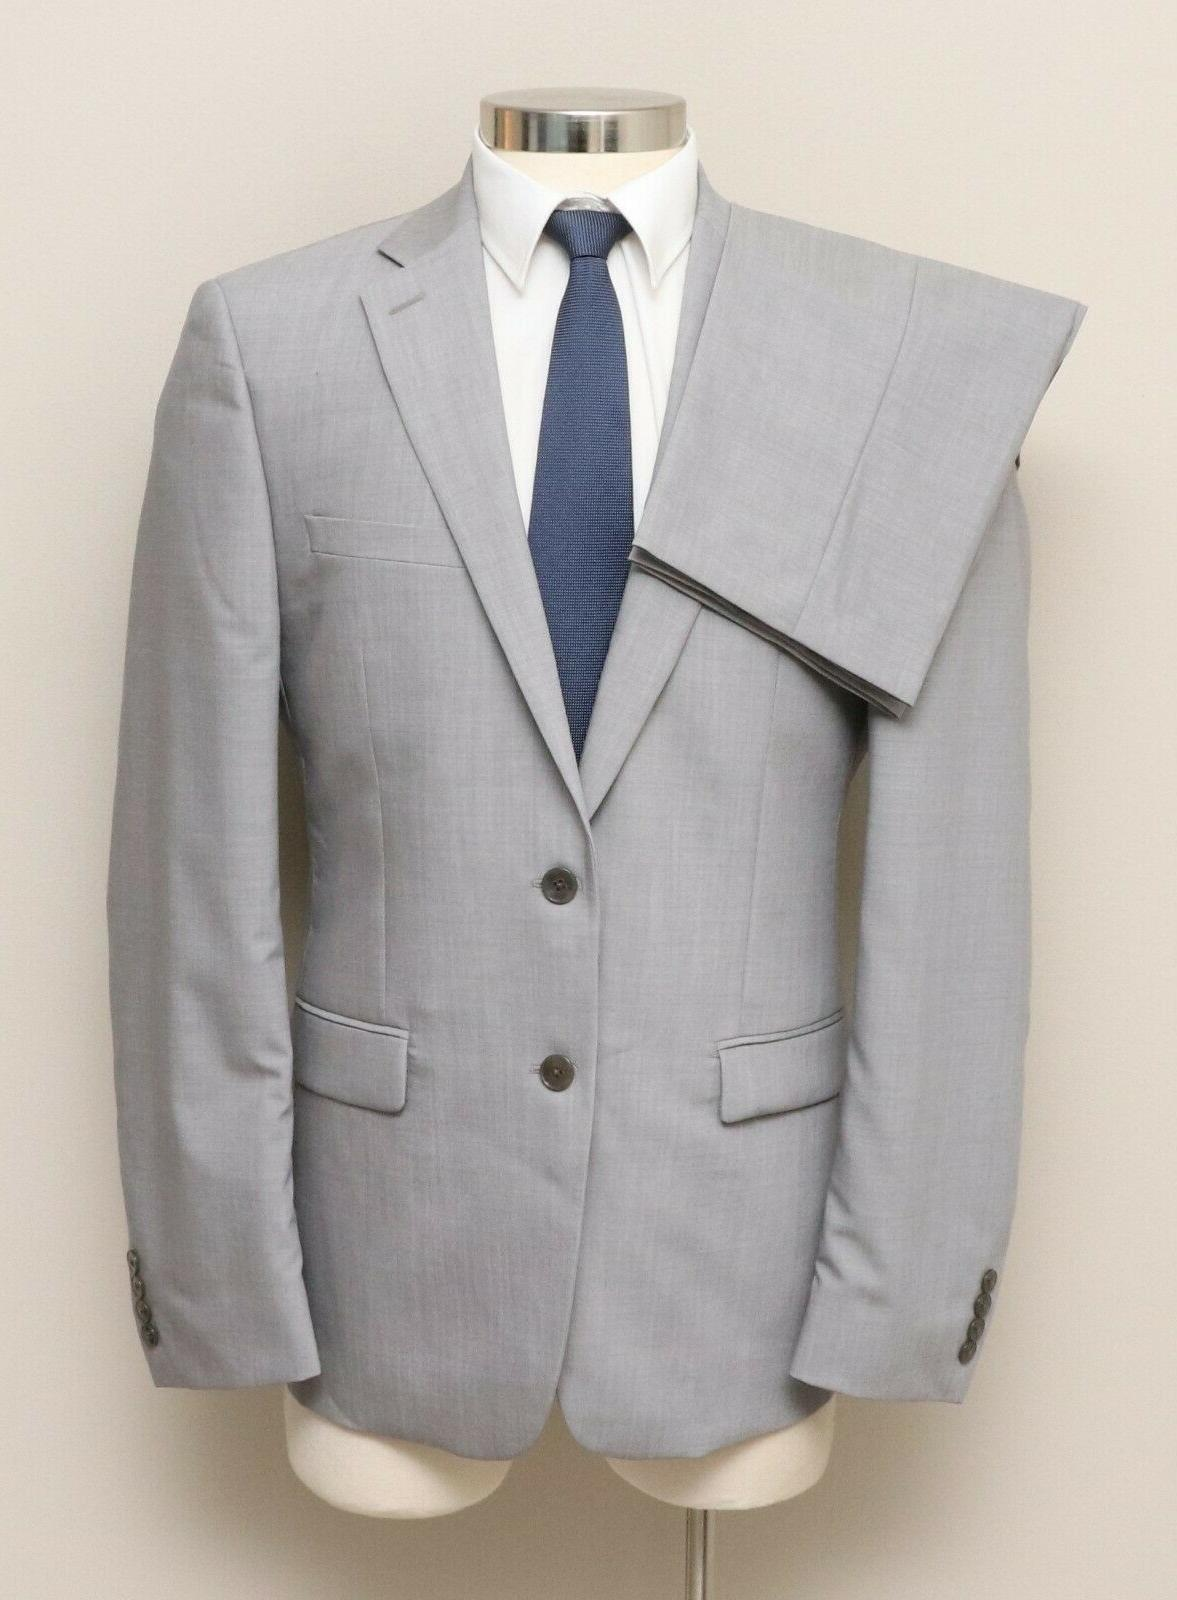 nwt mens 40r 2 piece light grey